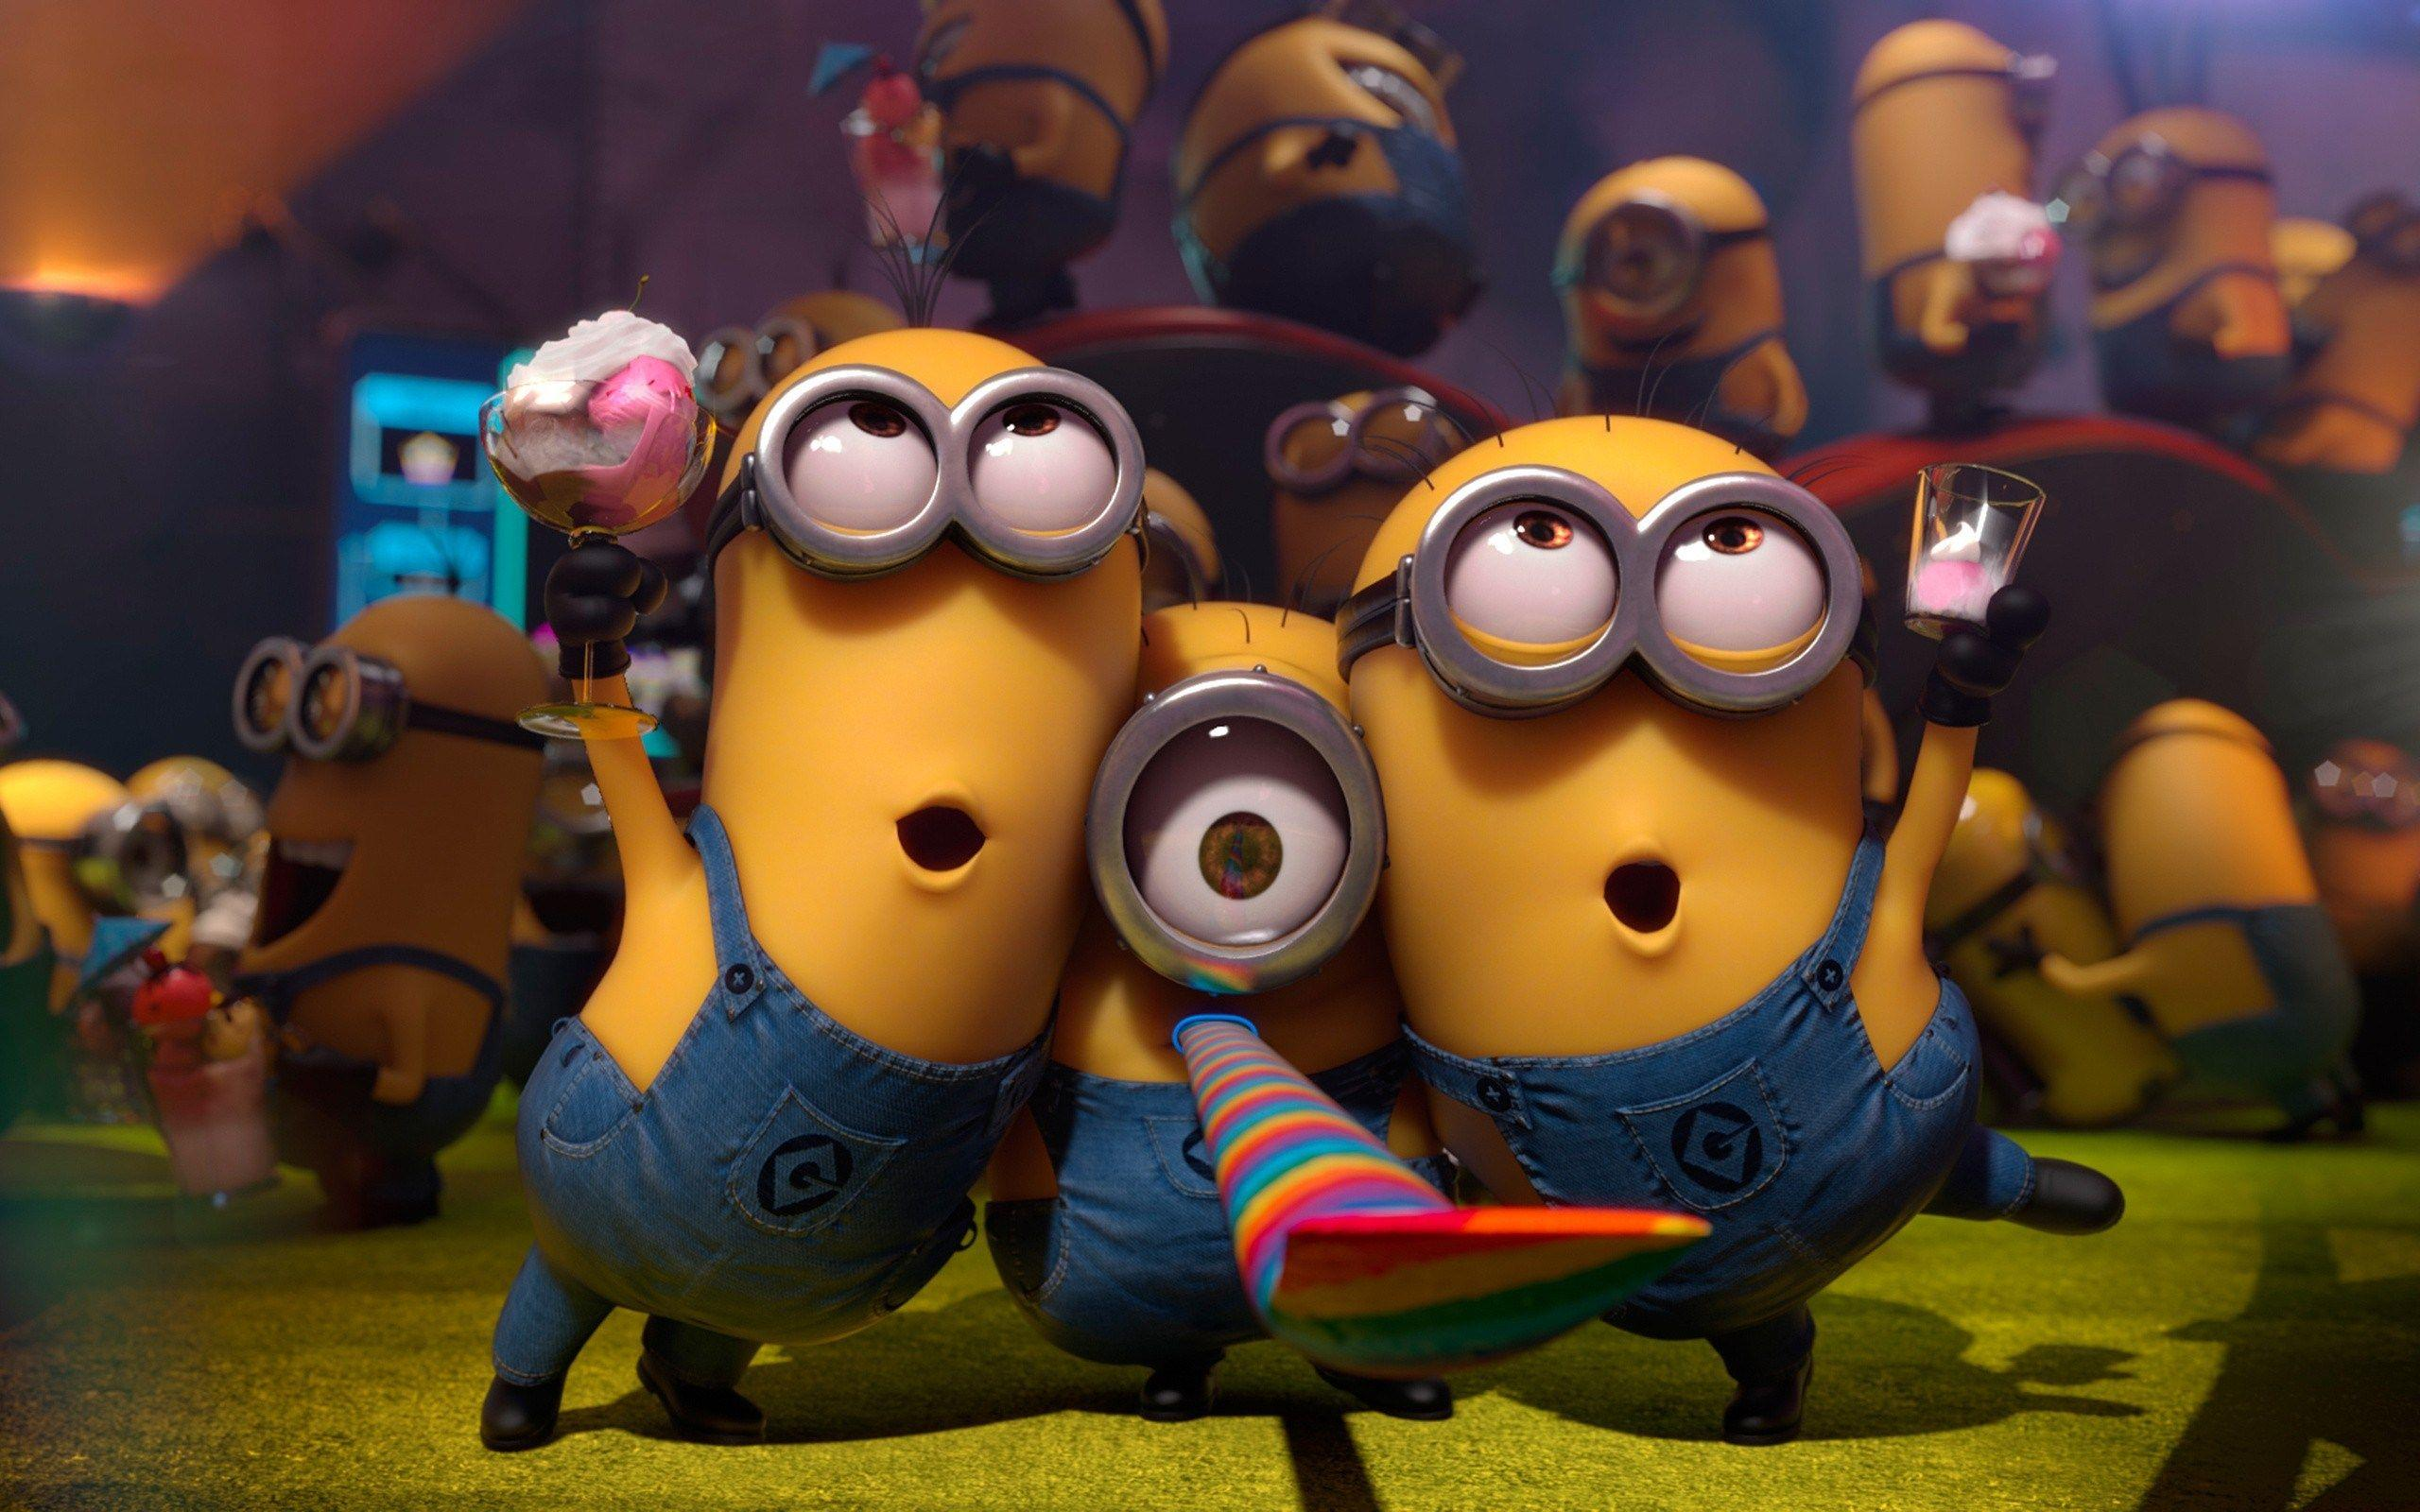 Minion Hd Wallpapers For Mac Wallpaper Cave